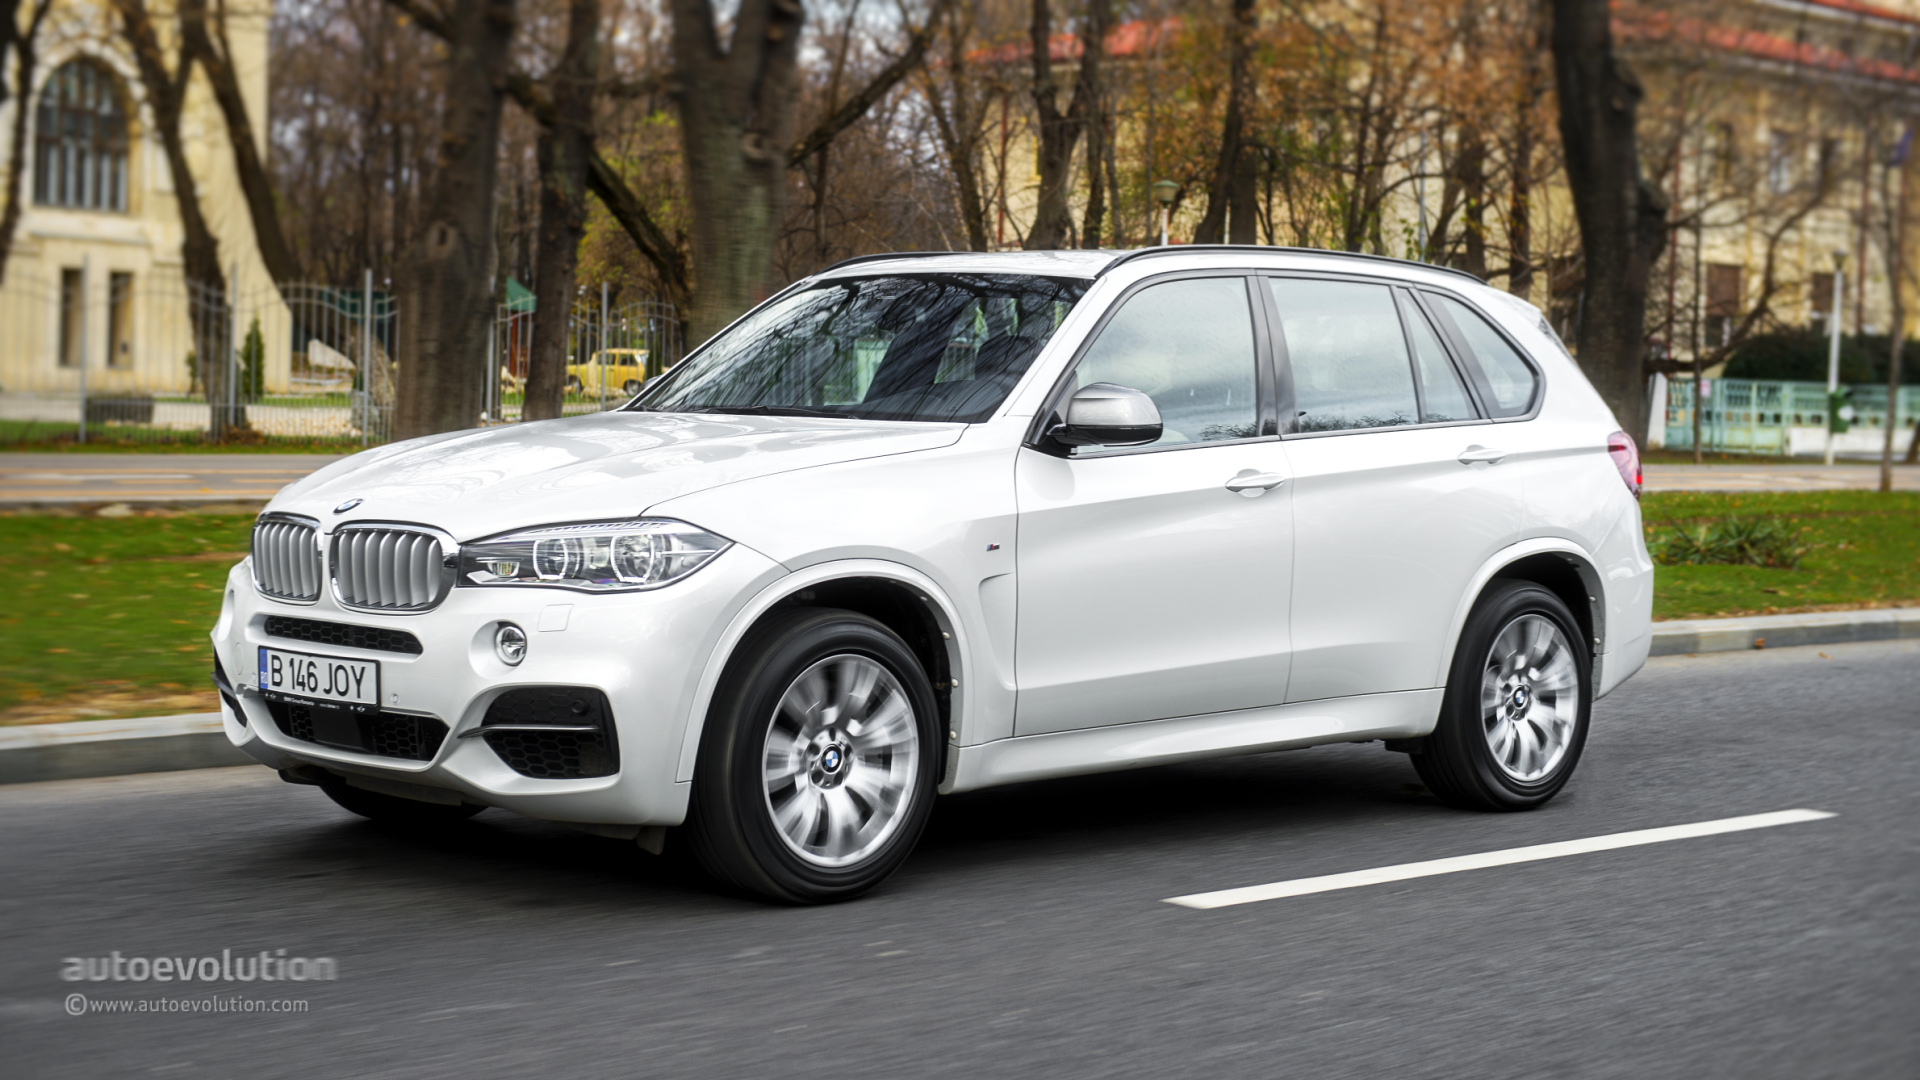 automedia s top 10 luxury suvs includes 2015 bmw x5 autoevolution. Black Bedroom Furniture Sets. Home Design Ideas